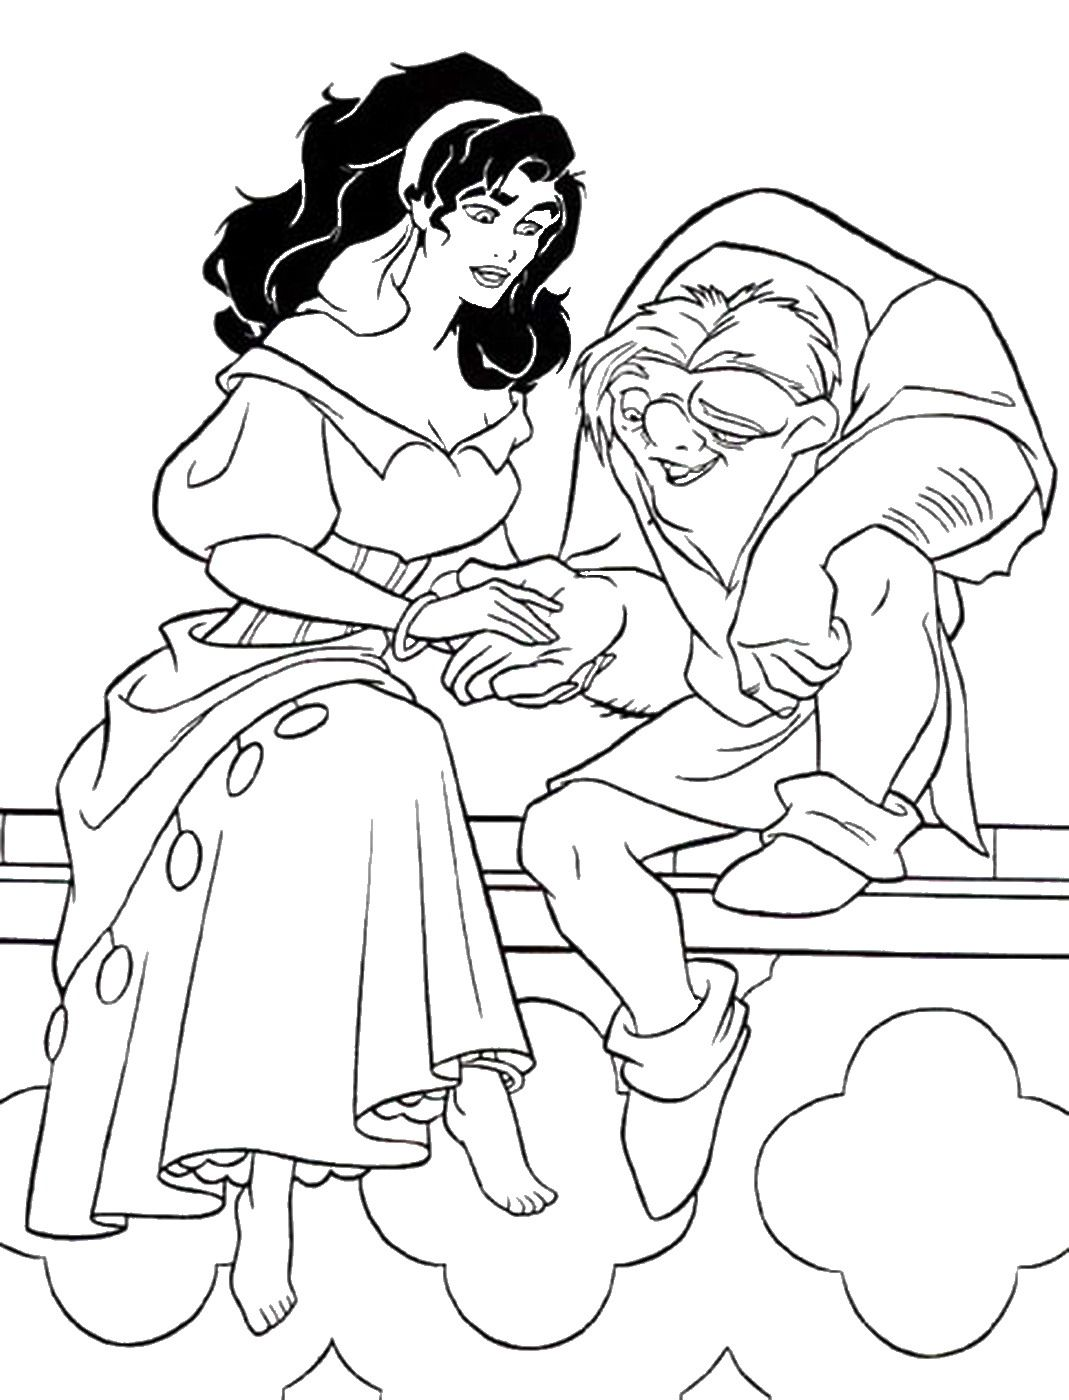 Disney coloring pages, Cute disney drawings, Cool coloring pages